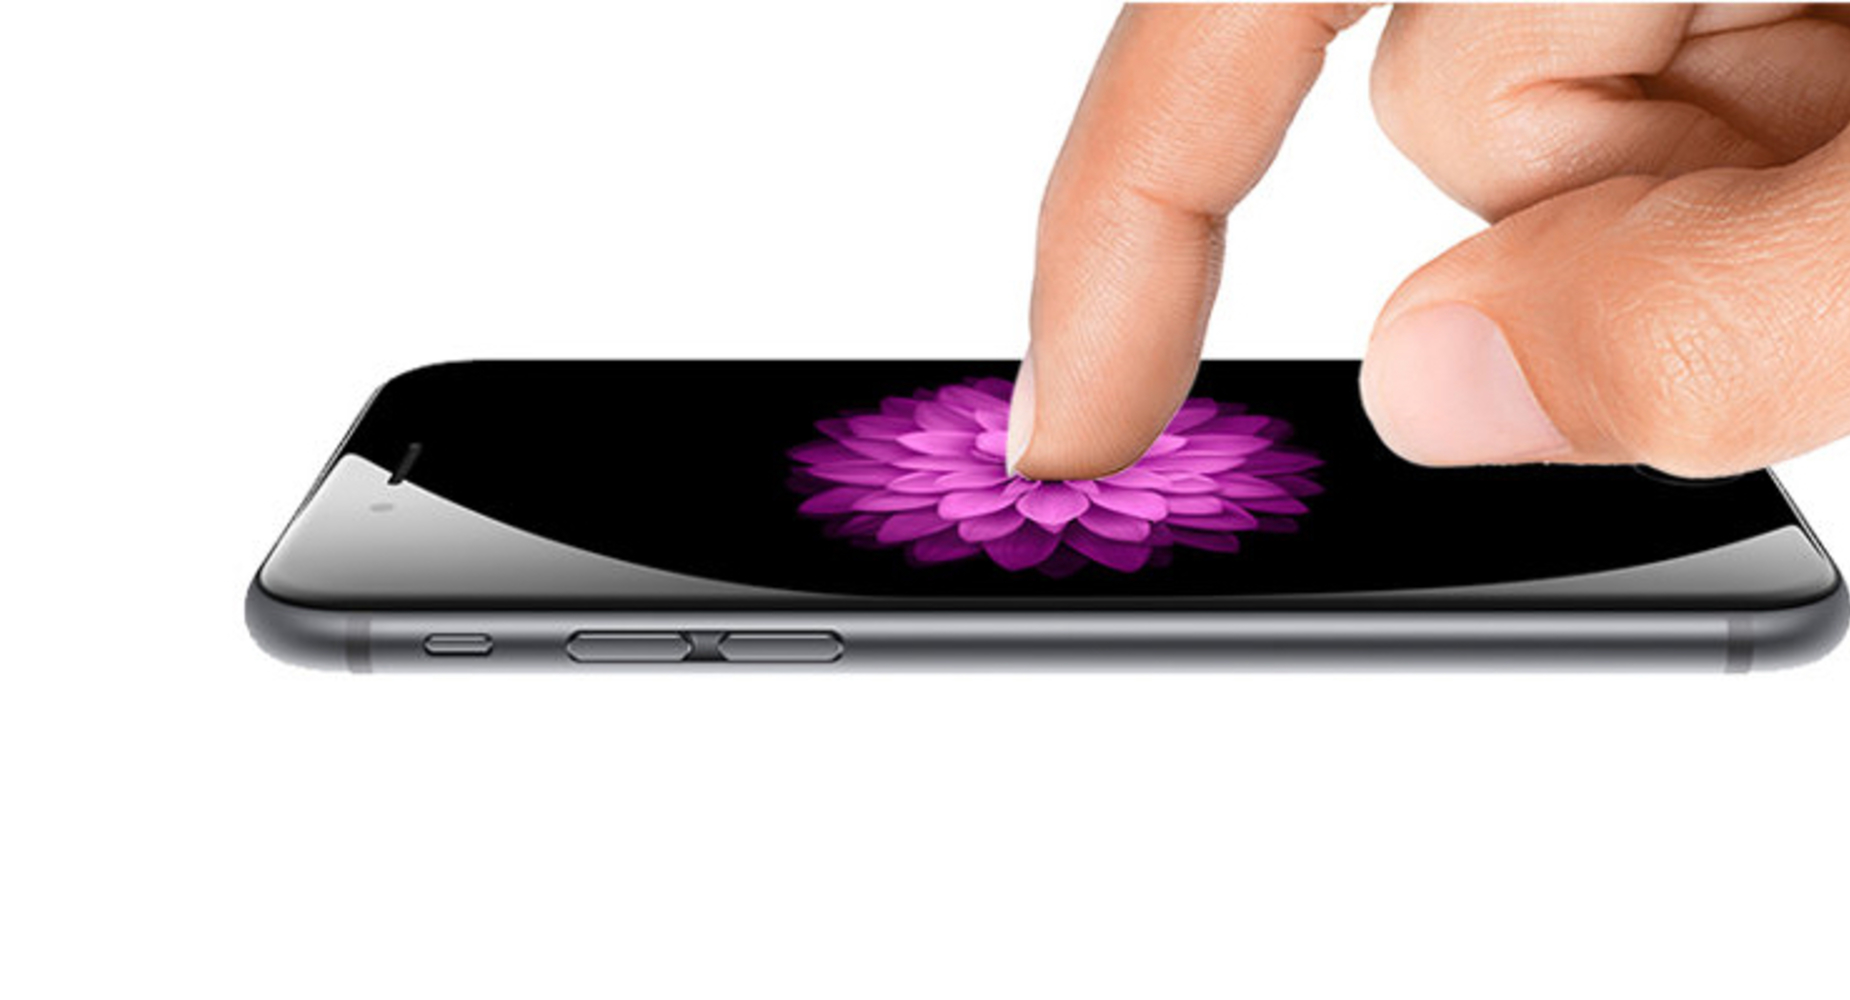 What will Force Touch mean for the iPhone?